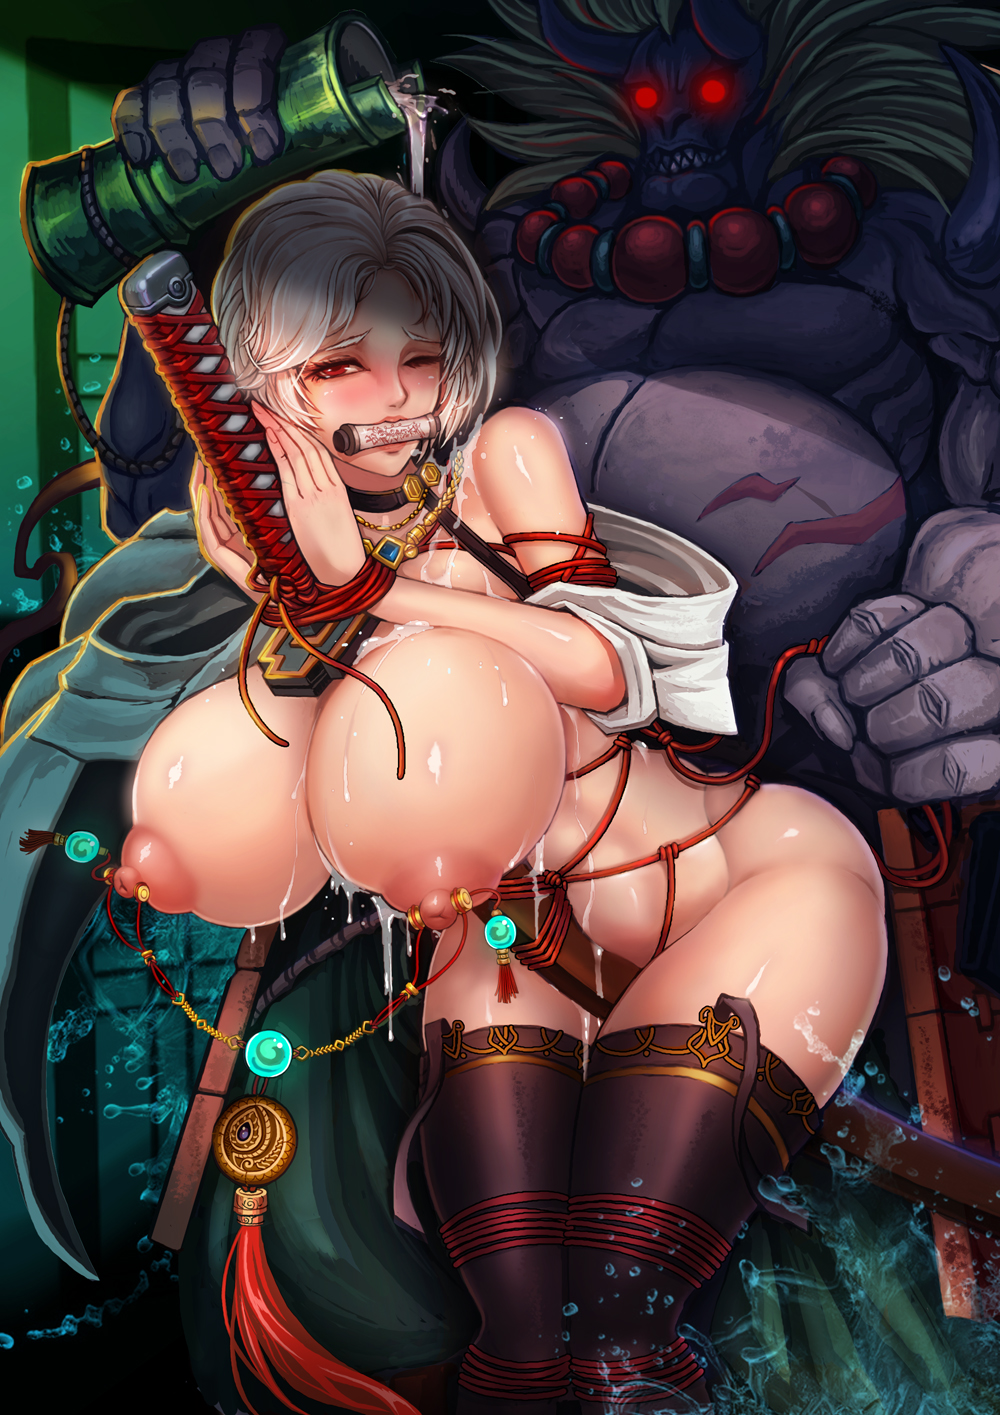 dungeon bringer magic/light My neighbor is a sissy